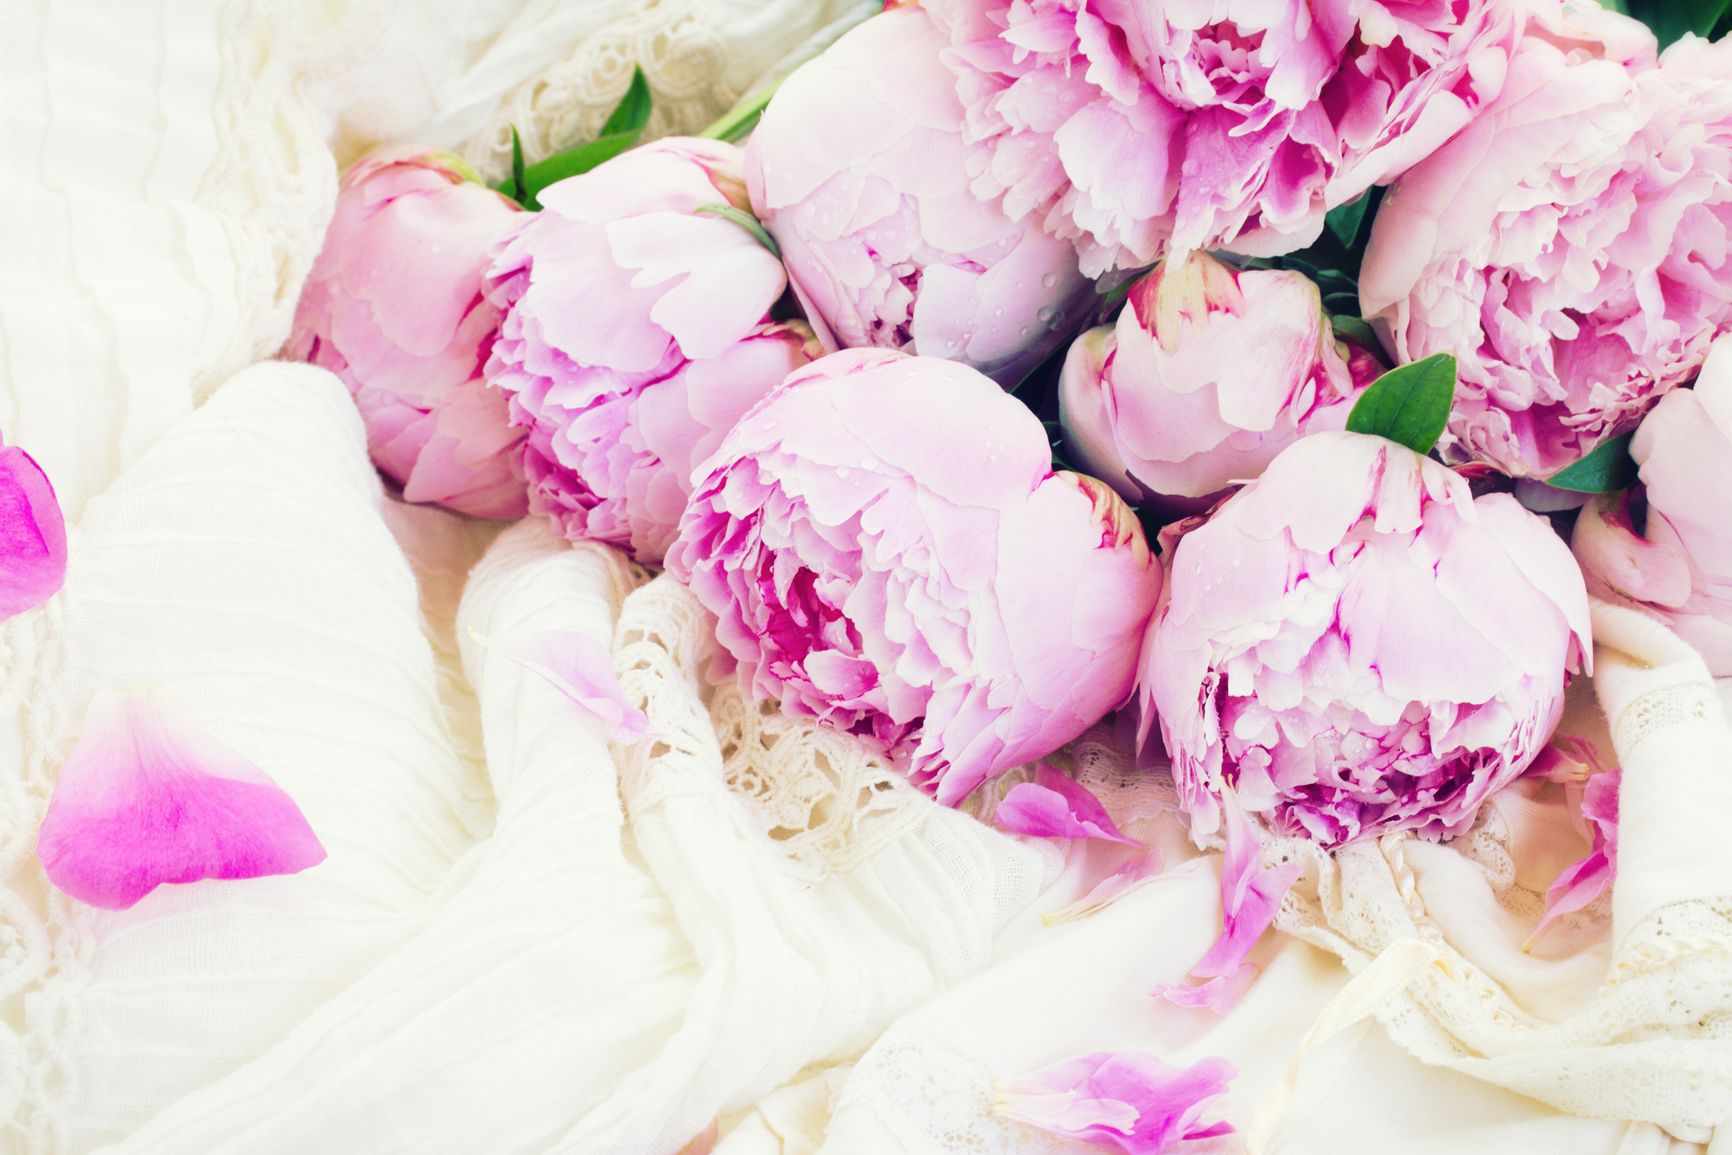 1732x1155 Hite and Pink Peonies HD Wallpaper, Background Images